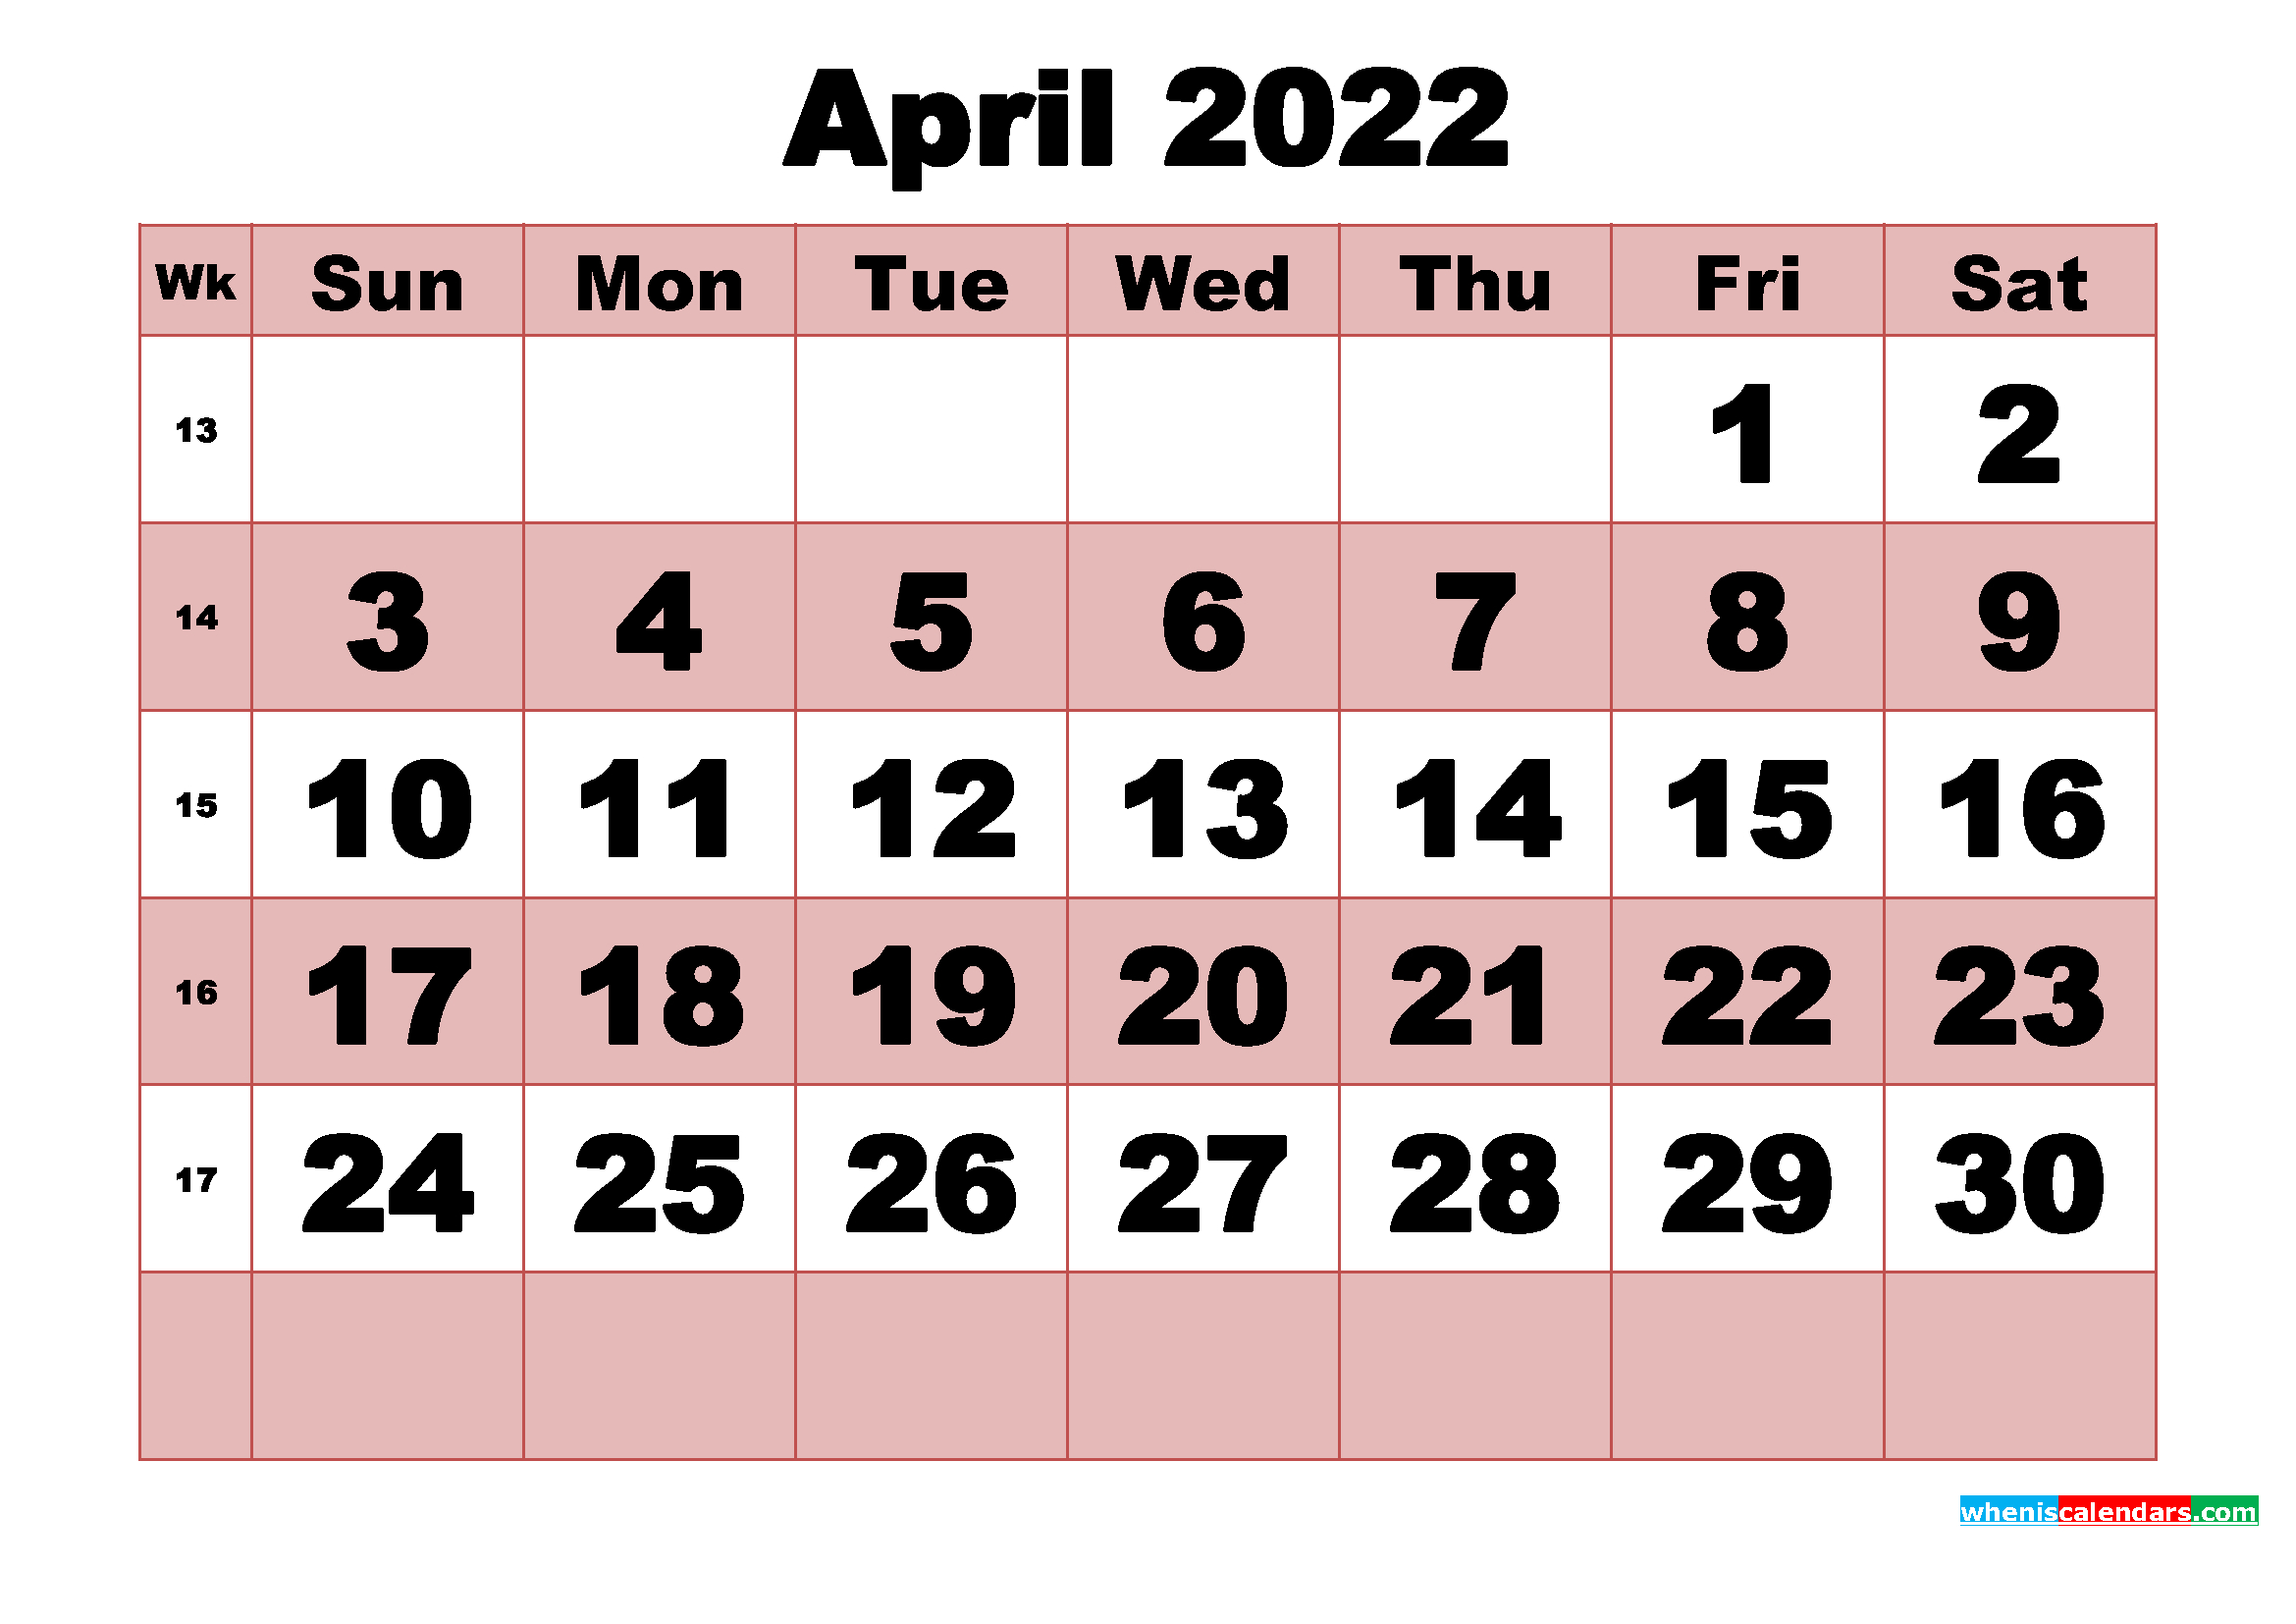 Free Printable Monthly Calendar April 2022 intended for Printable Monthly Calendar April 2022 Graphics